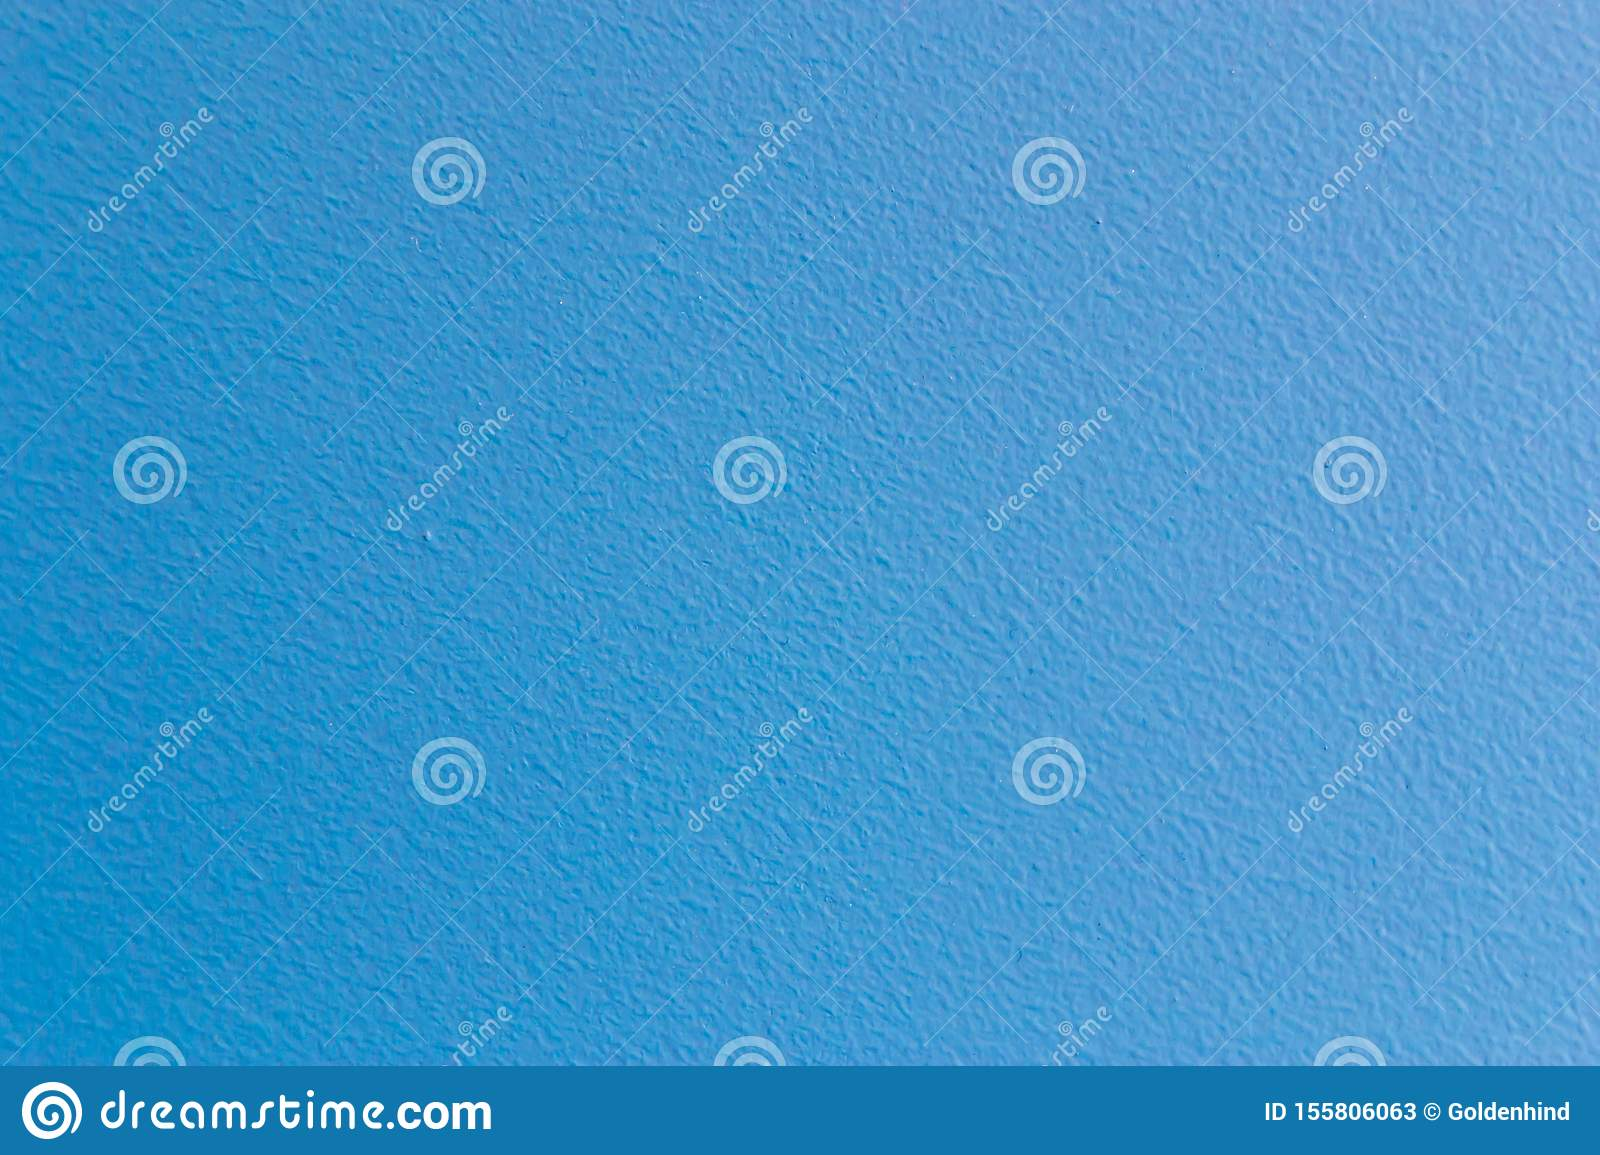 Wall Surface Painted In Light Blue Color Texture Background